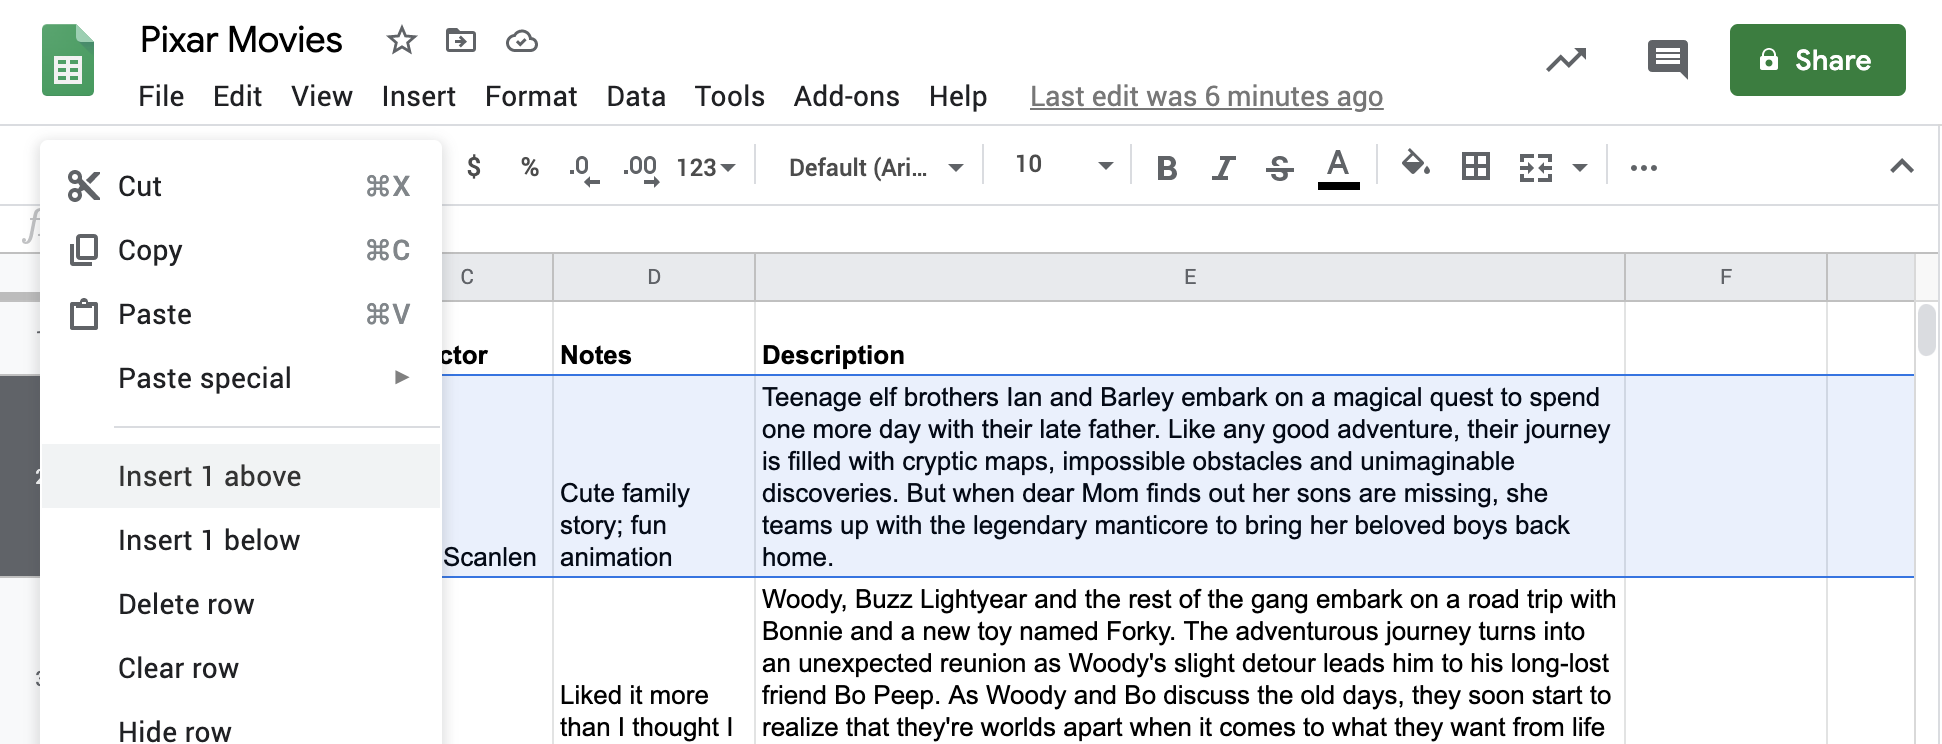 """Spreadsheet named """"Pixar Movies"""" with movies and information in corresponding columns. Row 2 is selected and right-click menu is open with Insert 1 above highlighted"""